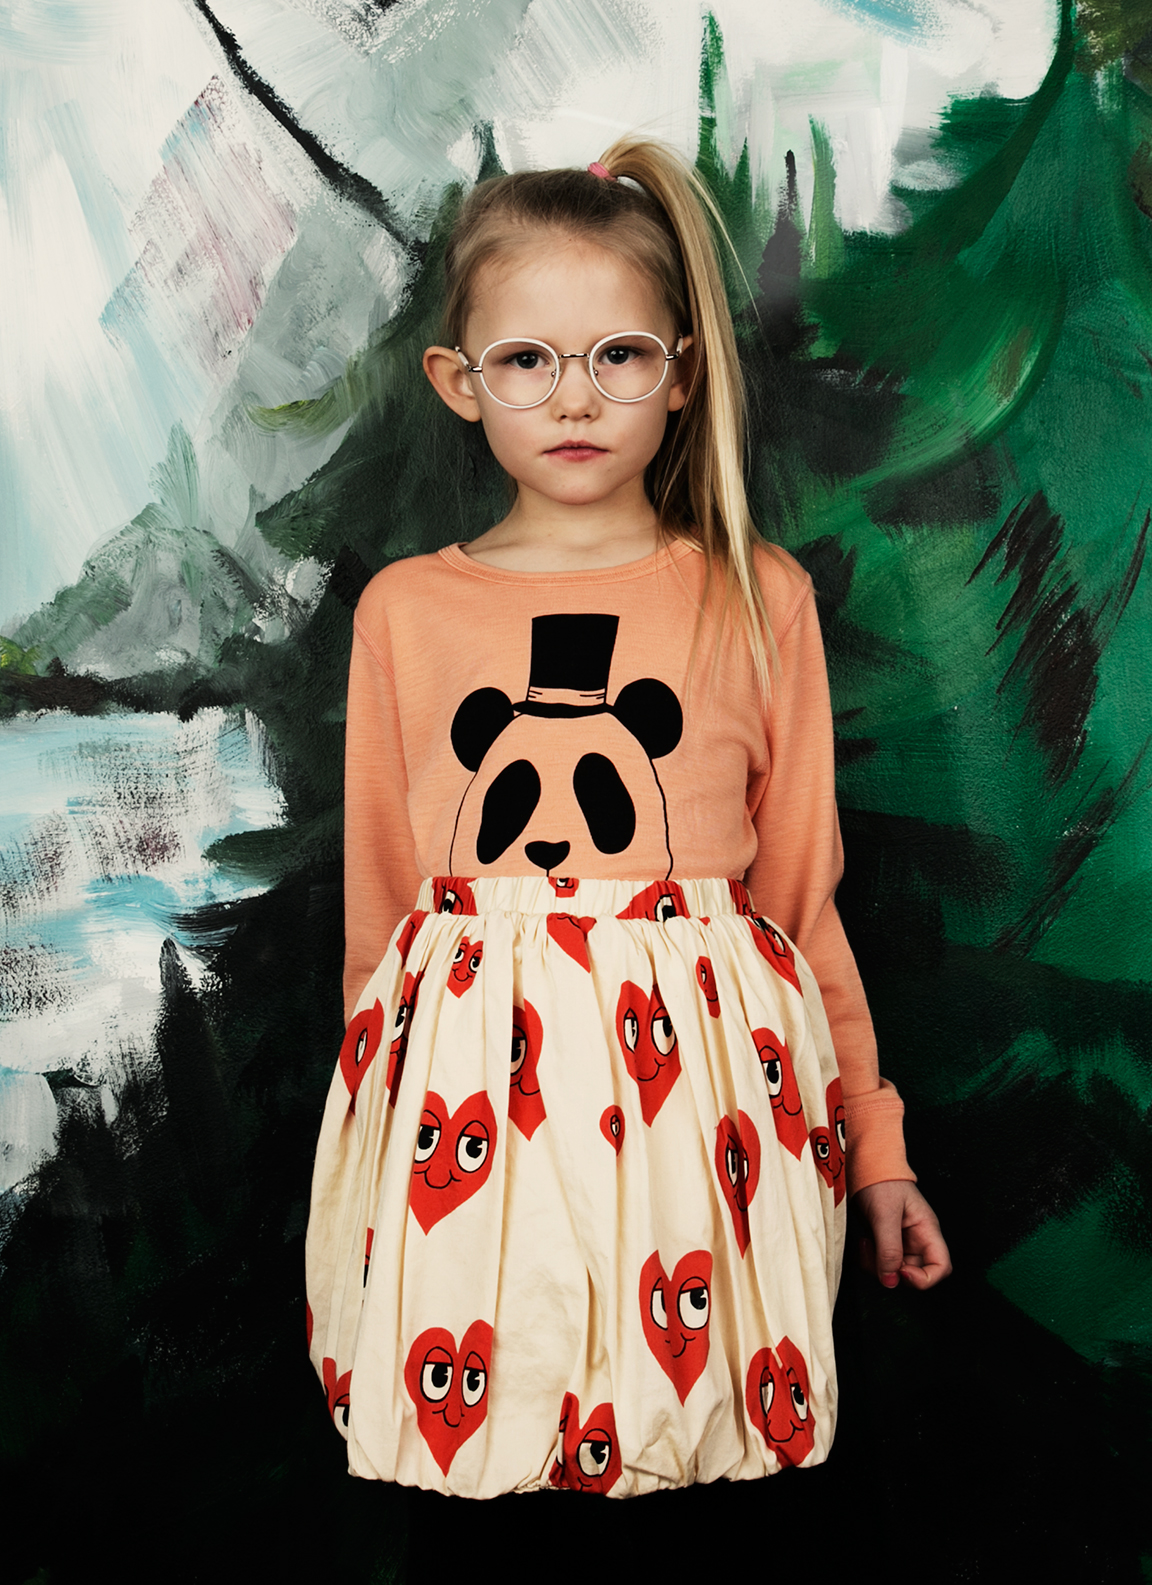 Panda merino wool shirt and Hearts skirt